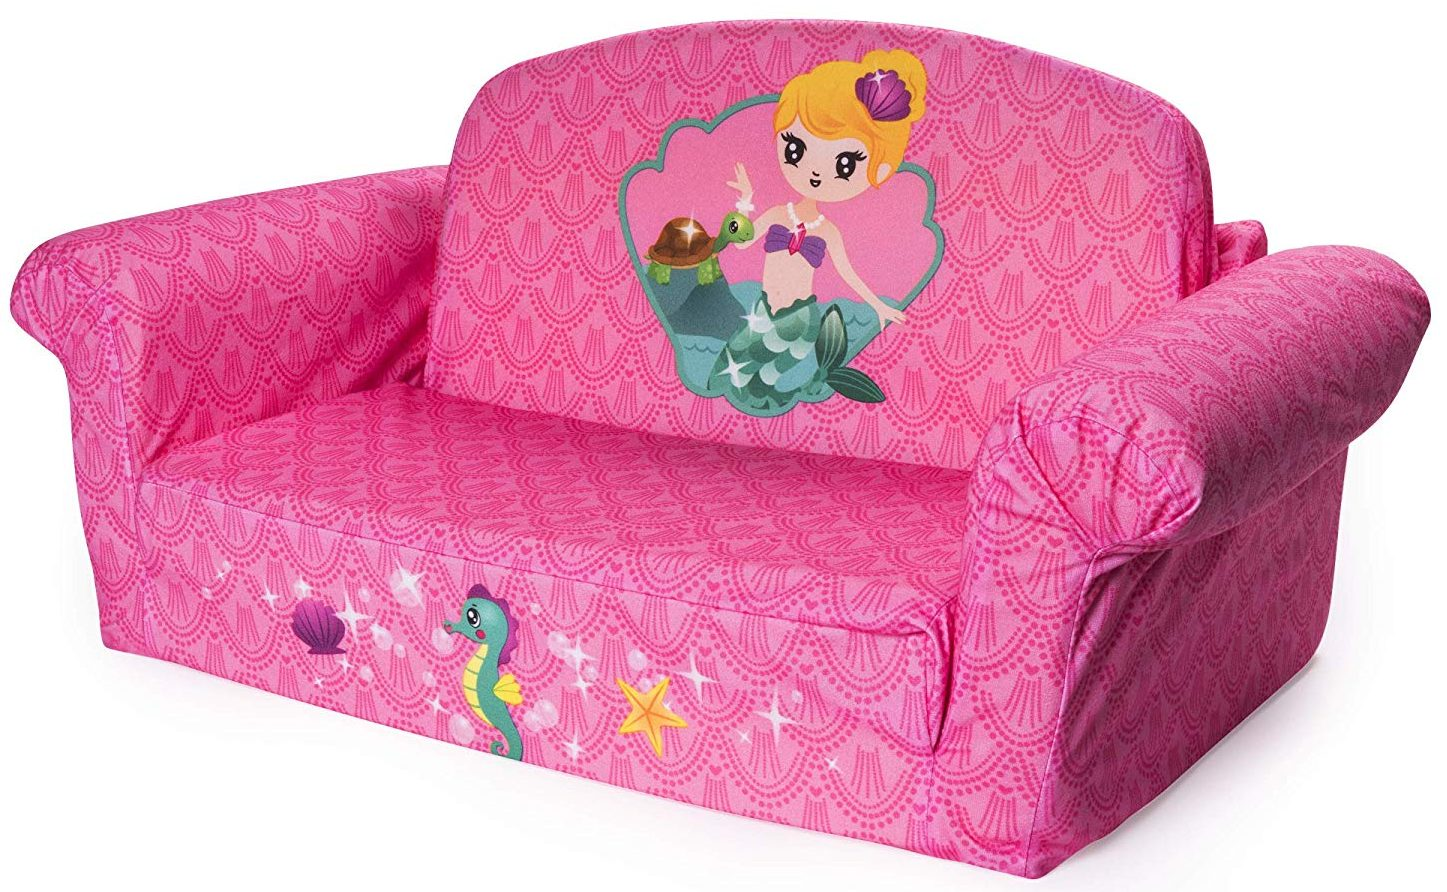 Sensational Top 10 Kids Fold Out Couch Review Durable Free Shipping Alphanode Cool Chair Designs And Ideas Alphanodeonline